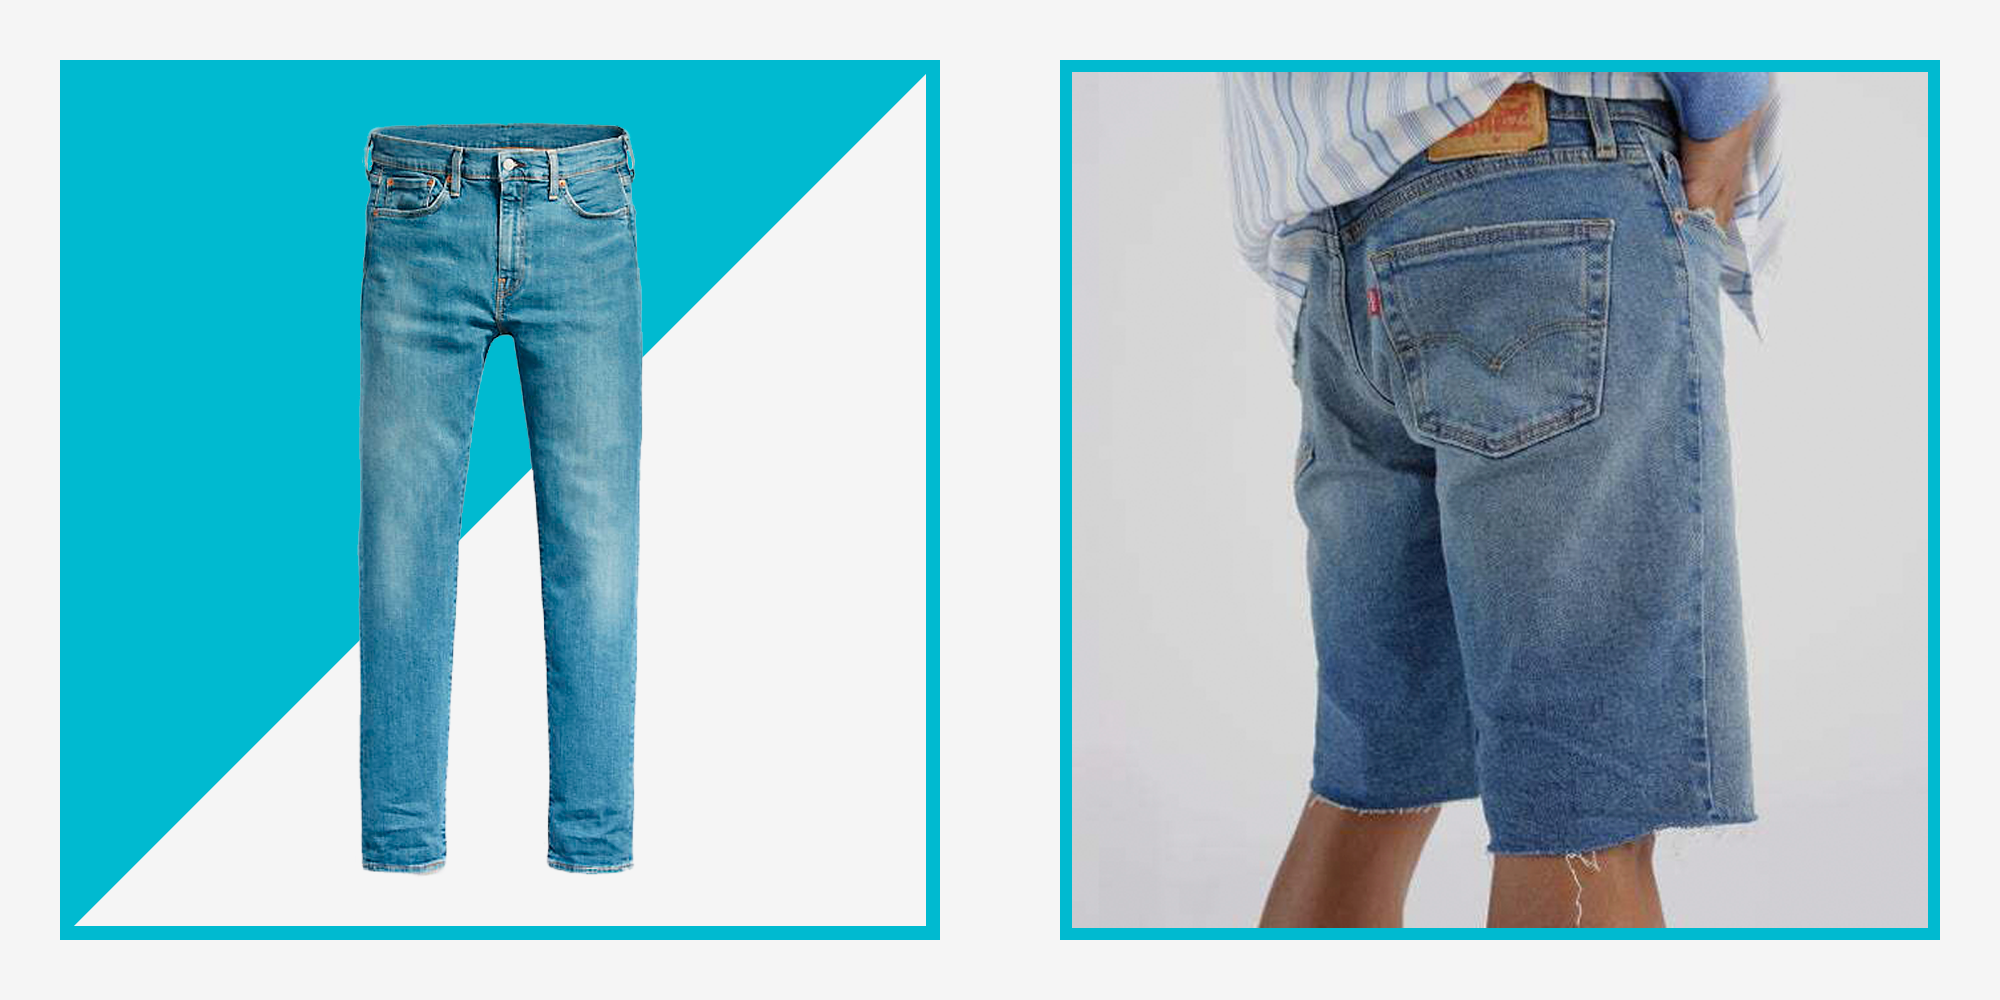 Levi's Is Taking 50% off Their Best-Selling Jeans Right Now